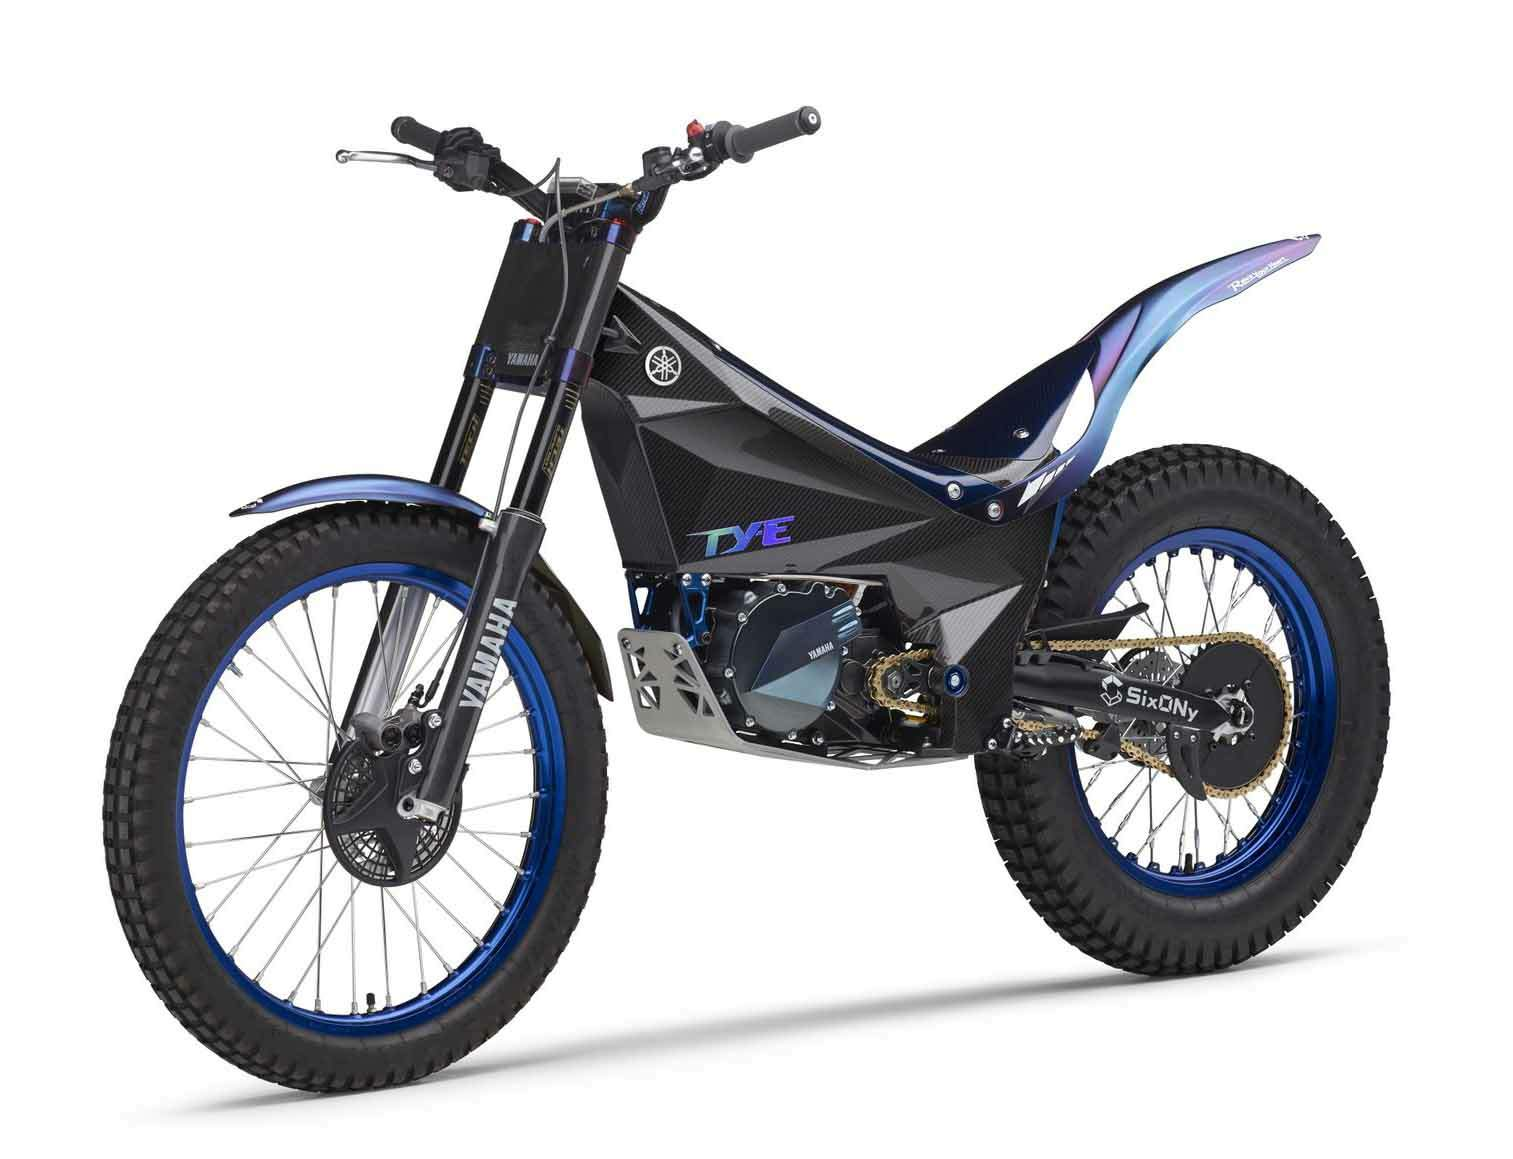 Yamaha Electric Motorcycle >> Yamaha Ty E Electric Trials